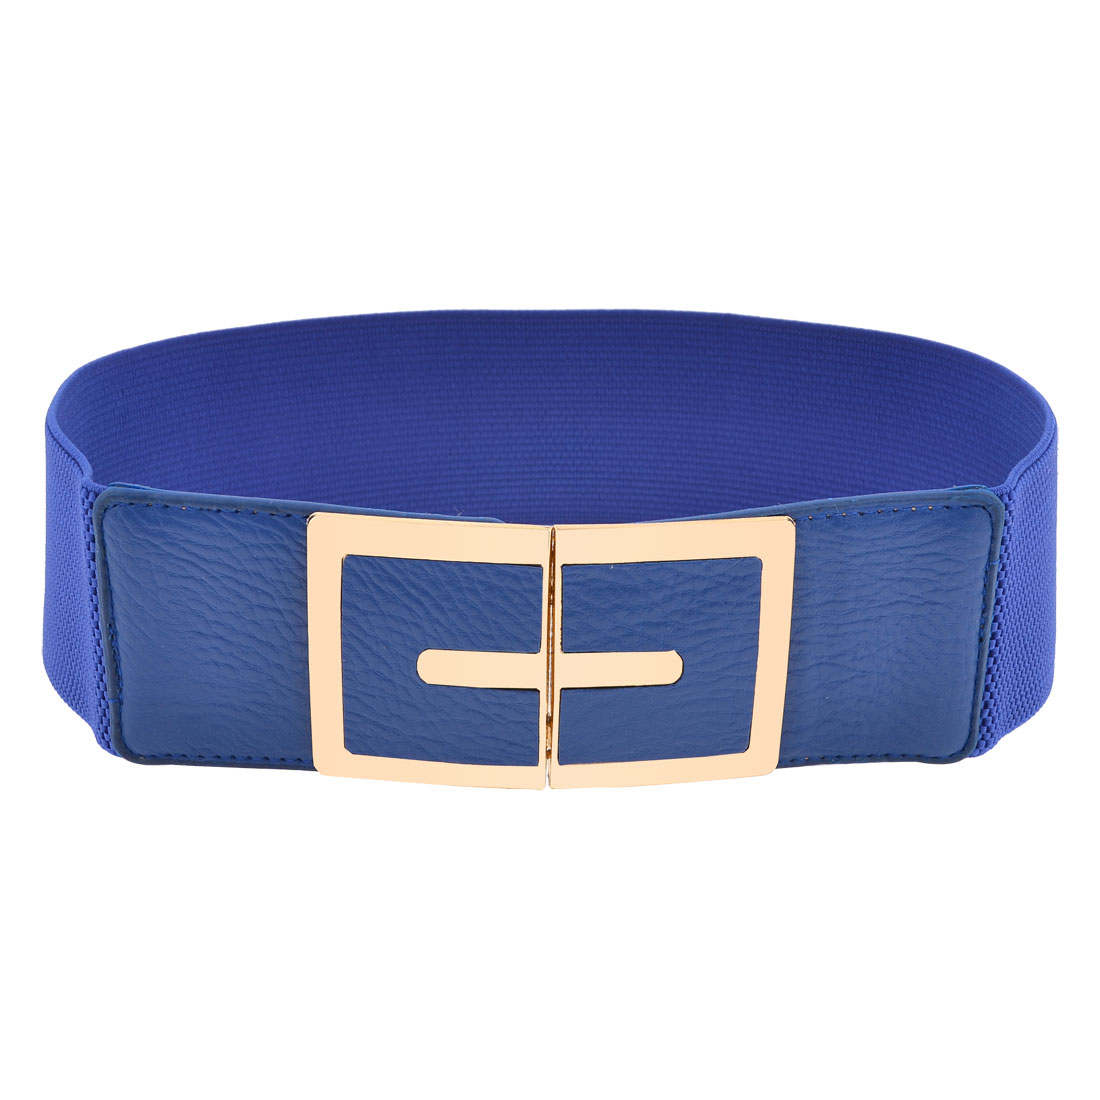 6cm Width Stretch Metal Interlock Buckle Blue Waist Belt Band Waistband for Lady